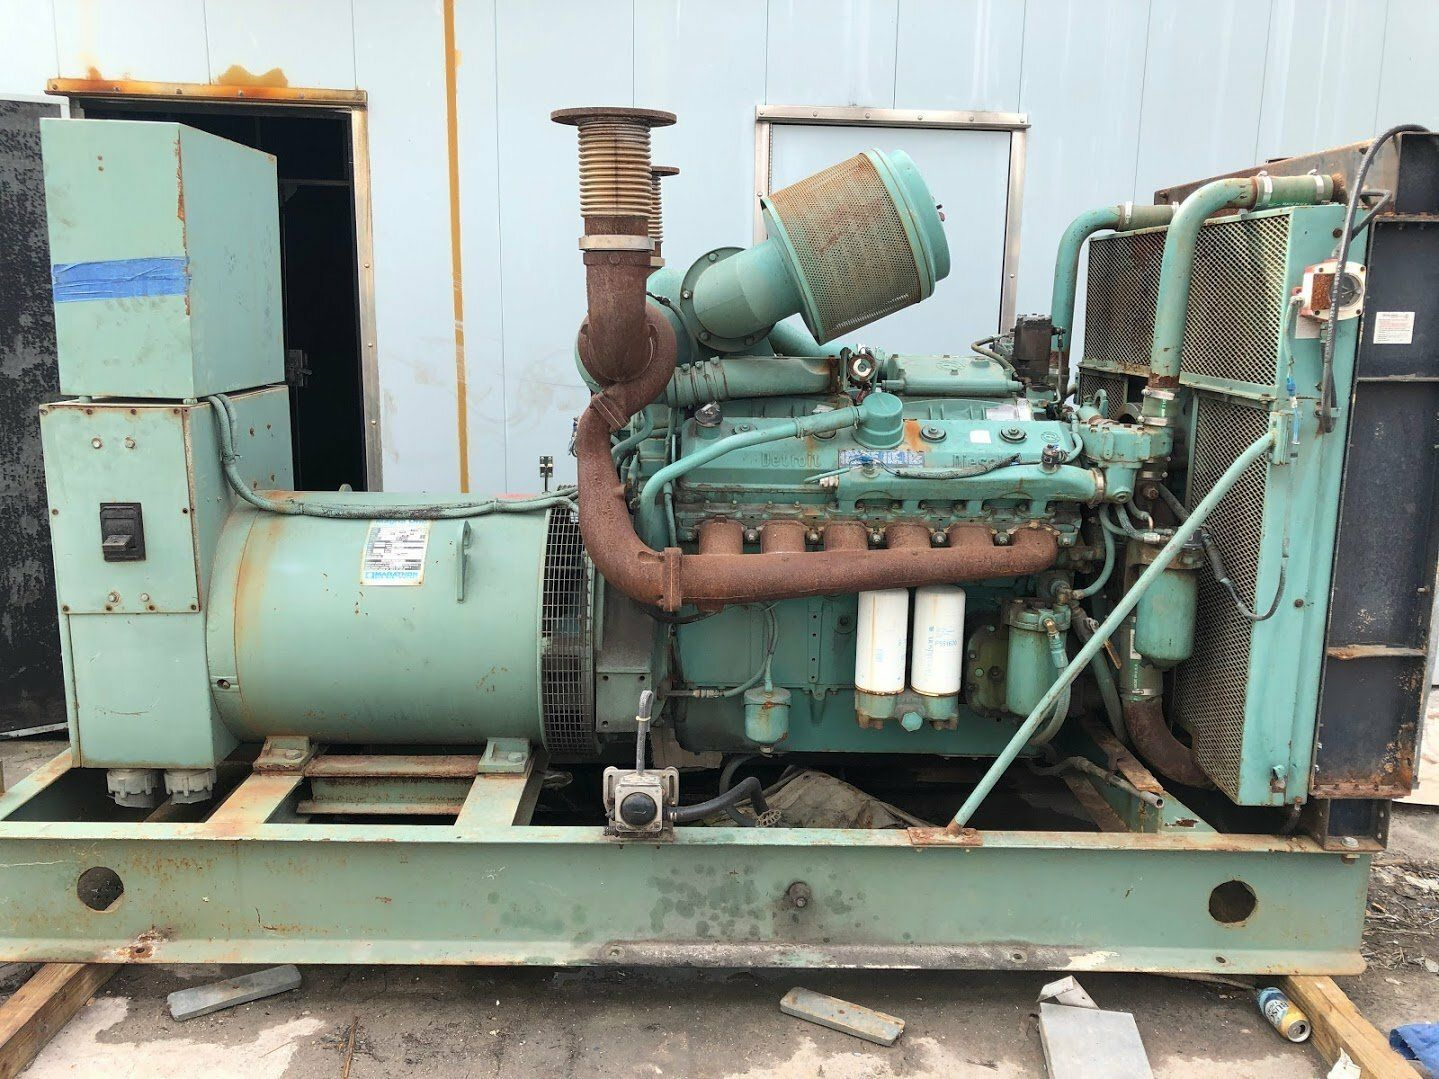 12v-71T USED INDUSTRIAL GENERATOR SET